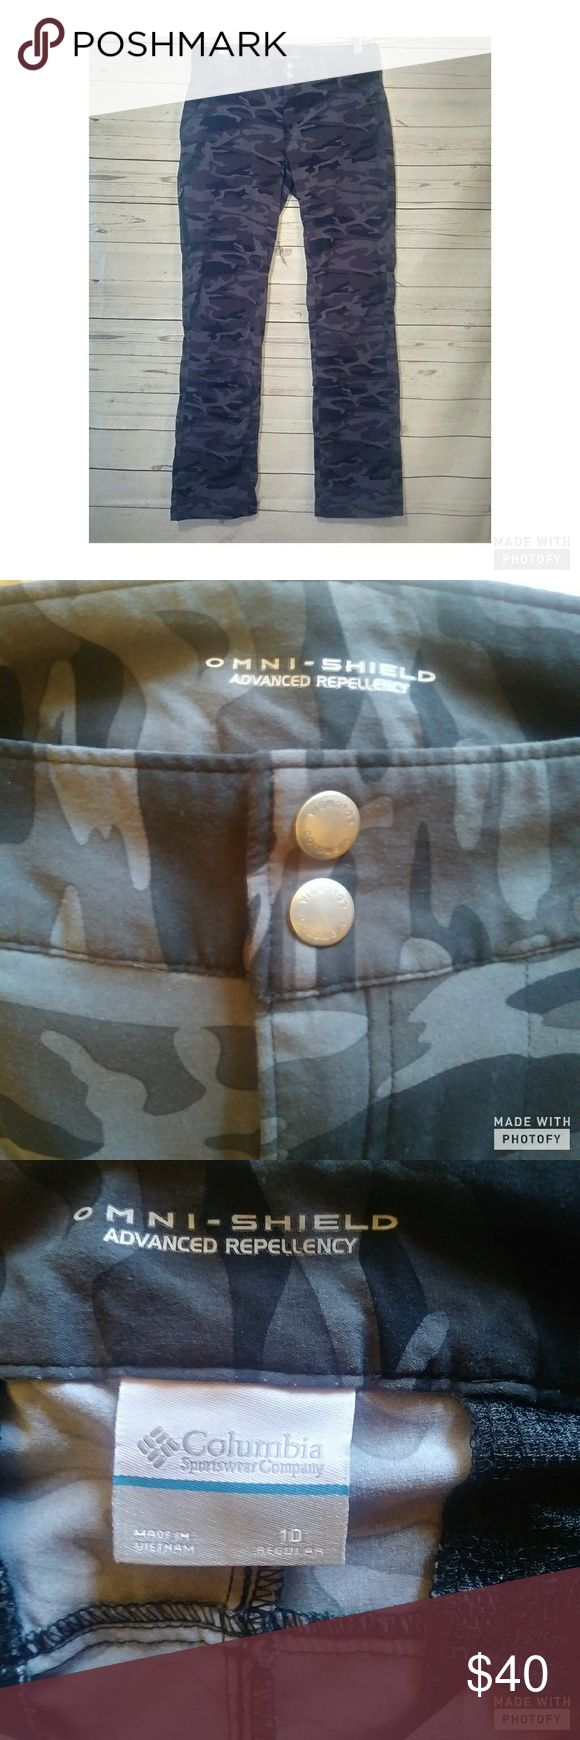 """Columbia sports Omni-Shield black camo pants(8) Like new. Only washed 1 time. These are a black camo hiking pant. Its  the advanced repellancy hiking pant. Has buttons on inside mid cuff to raise pant leg up.  Measurements laying flat Inseam 30"""" 16""""across These are size 10 however I personally think they run small. Use measurements Columbia Pants Boot Cut & Flare"""